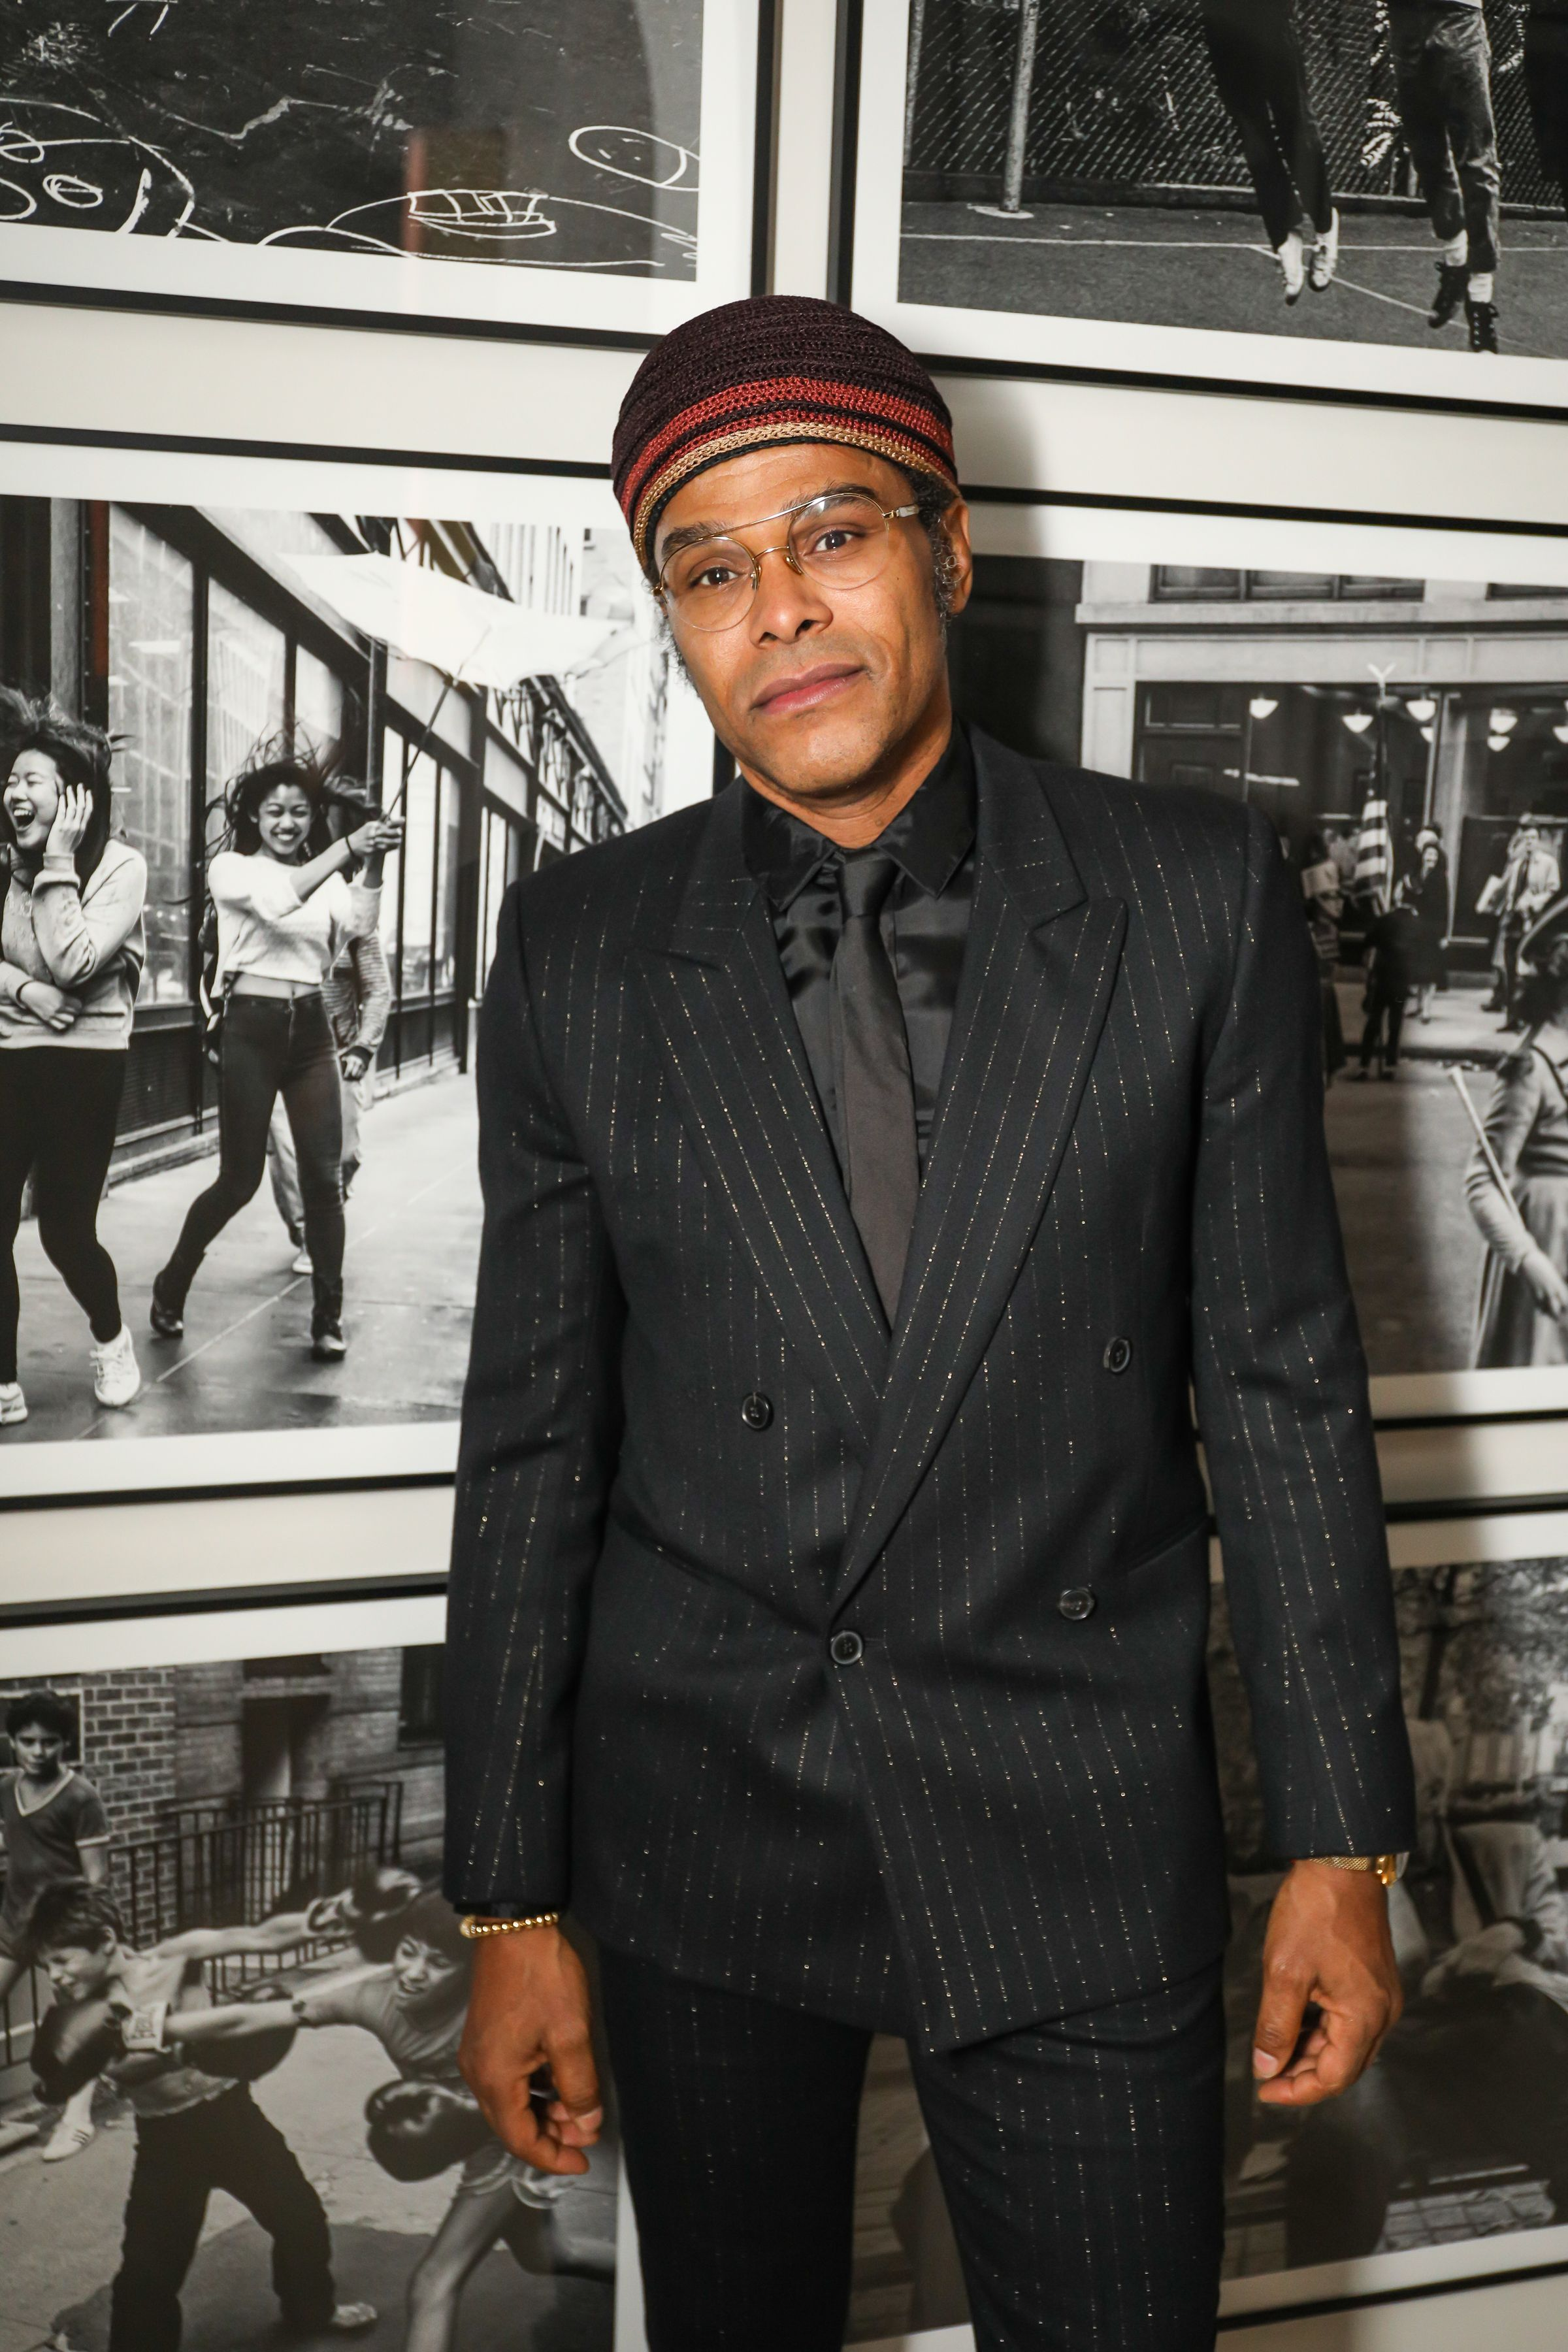 Maxwell Maxwell celebrates the premiere of The Times Square Edition, hosted by Ian Schrager, during the weekend of March 15-17.